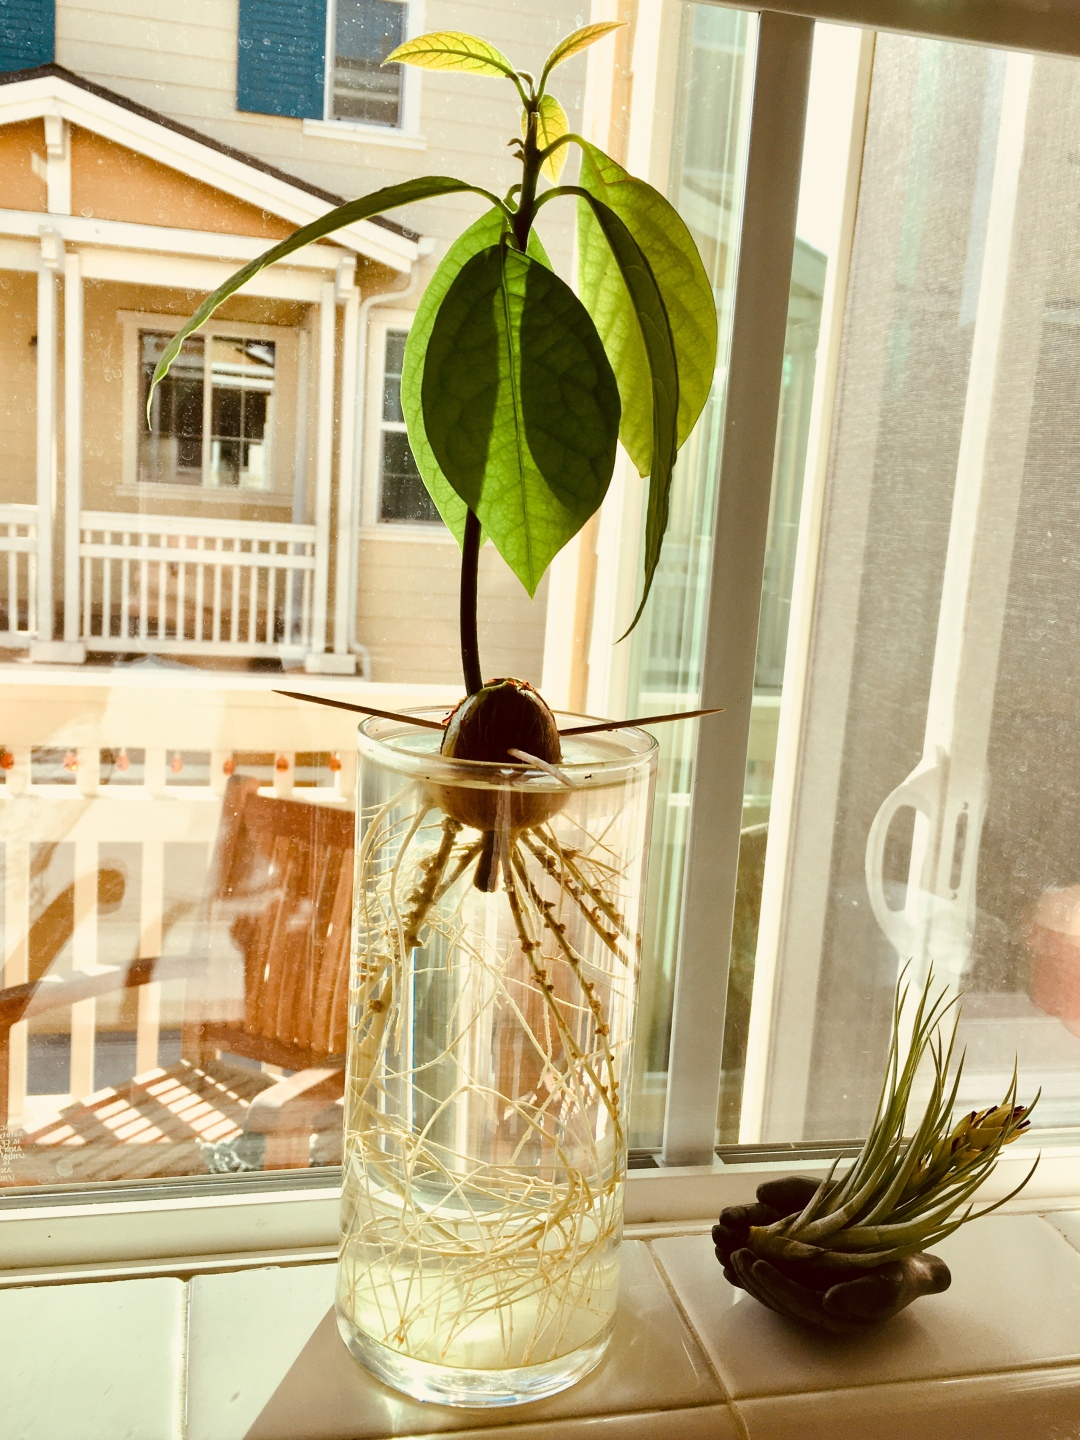 DIY Avocado Tree from Seed/Pit